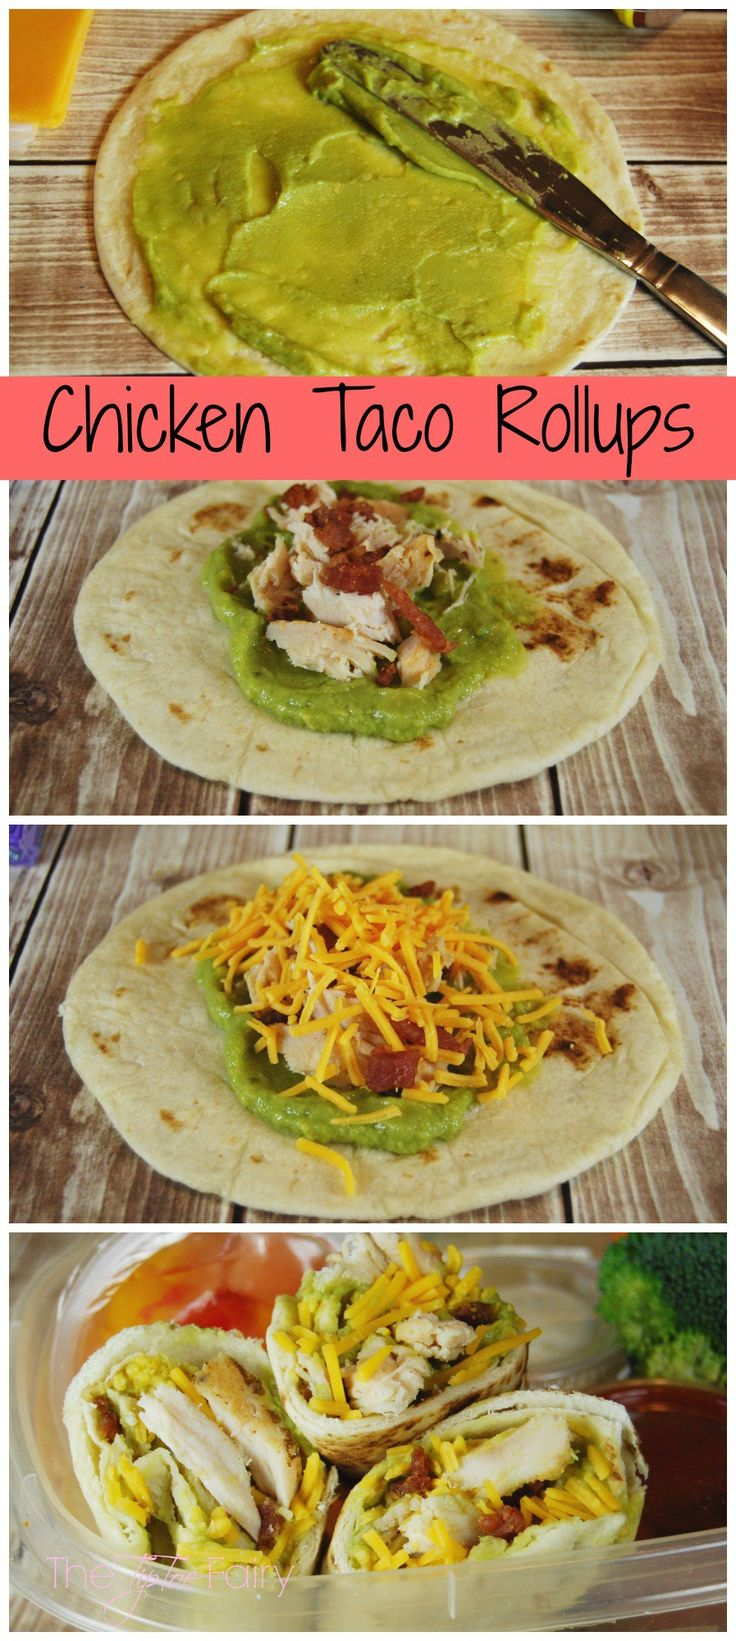 Lunch Box Ideas - Chicken Taco Roll Ups | The TipToe Fairy #MyGoodLife #shop…